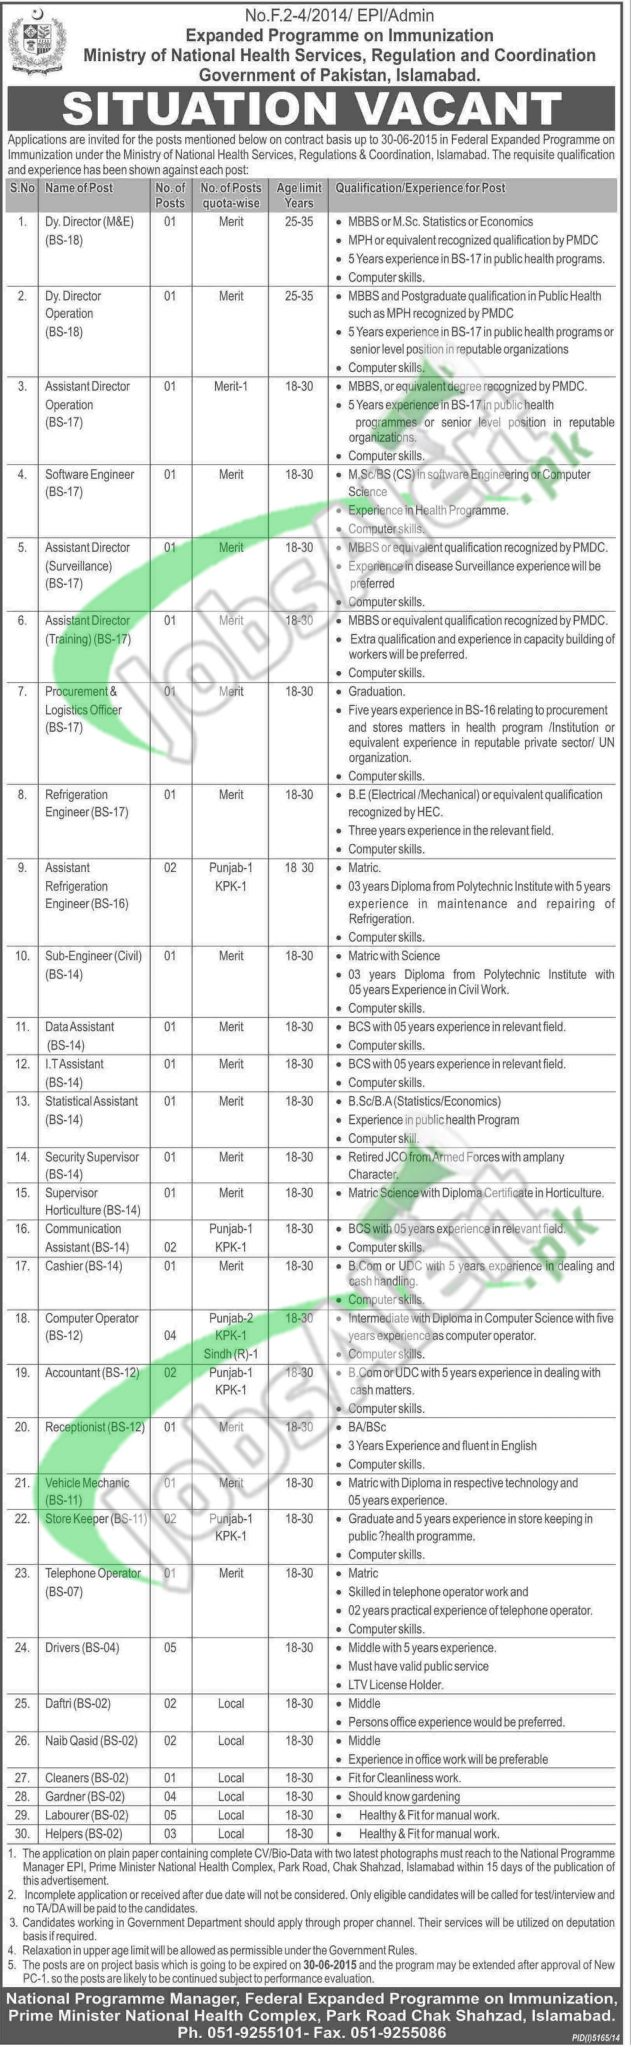 Ministry of National Health Services Regulations & Coordination Islamabad Jobs